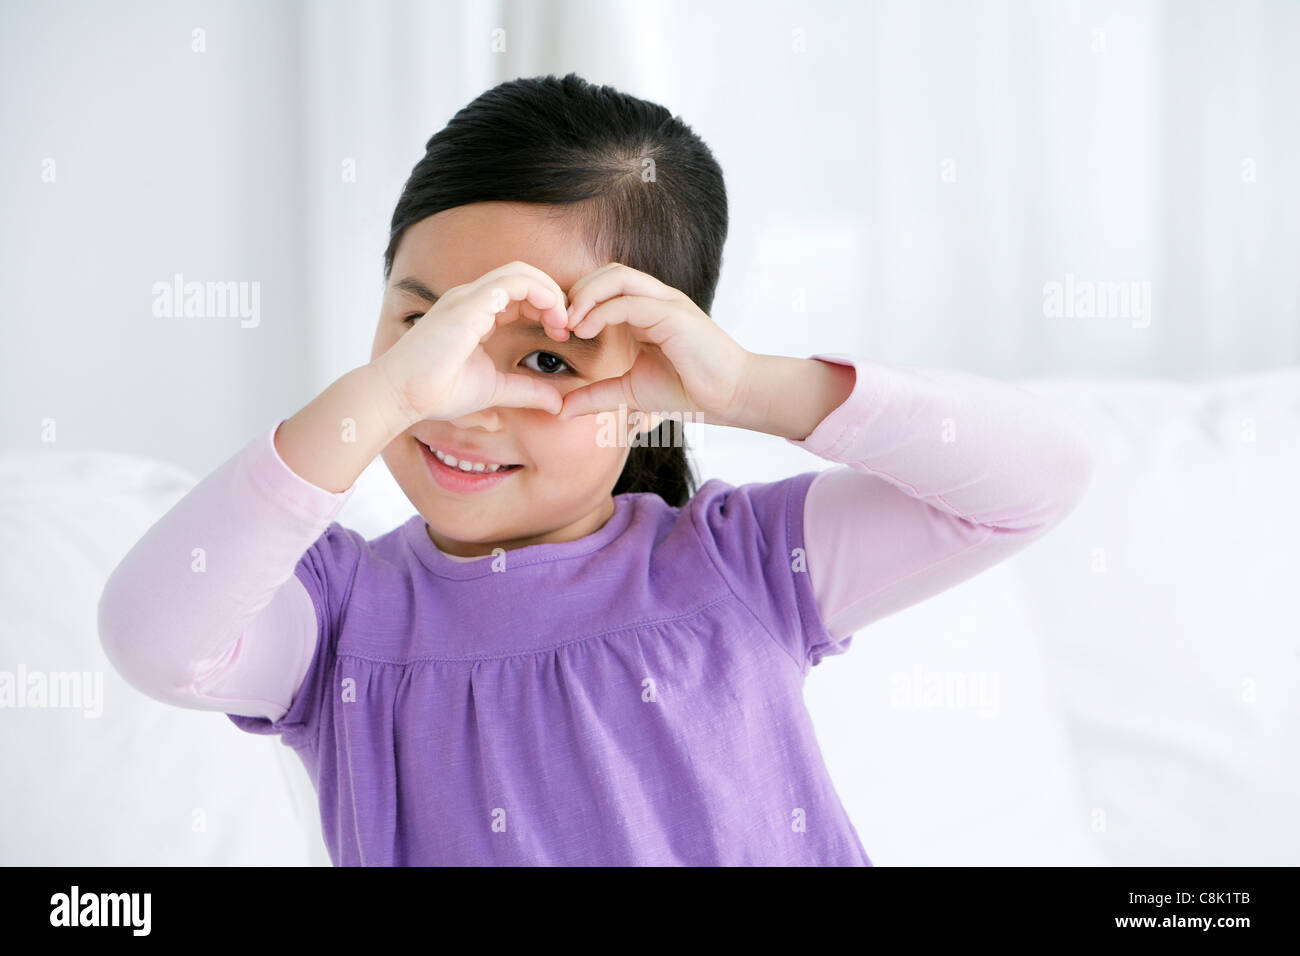 Chinese girl hands in heart shape - Stock Image